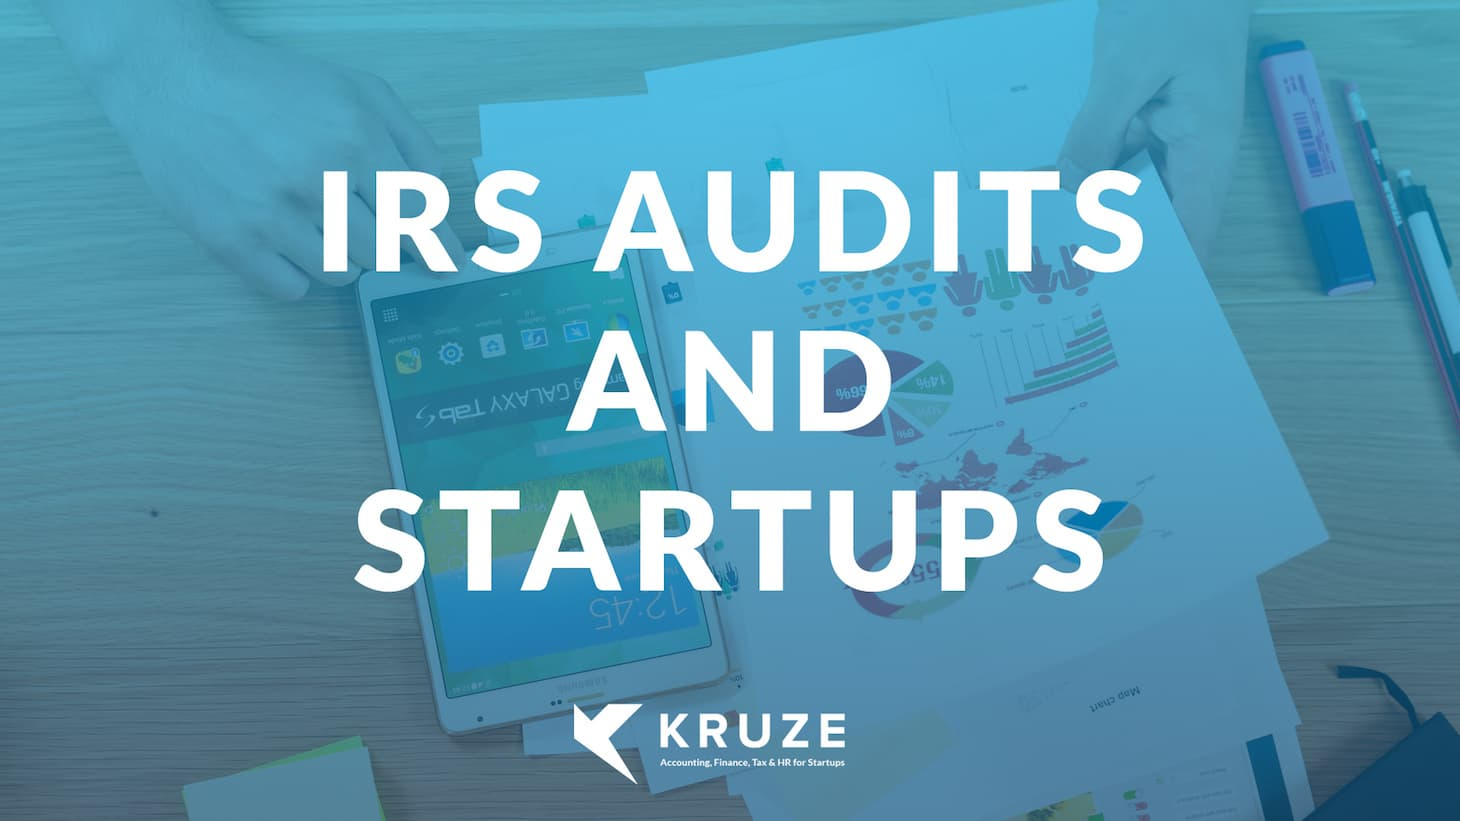 IRS Audits and Startups